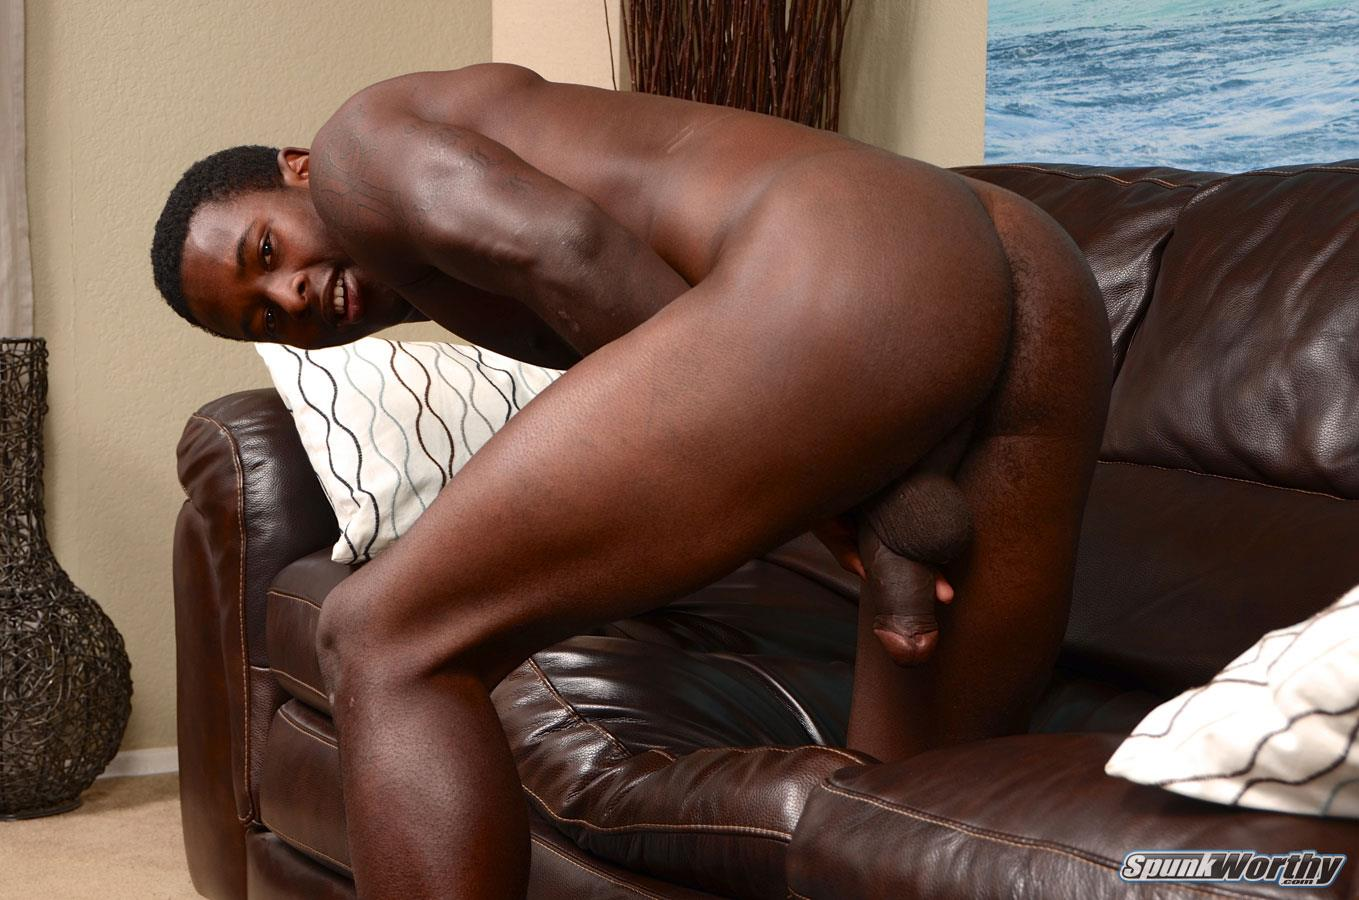 SpunkWorthy-Heath-Naked-College-Football-Player-Stroking-His-Big-Black-Cock-Amateur-Gay-Porn-12 Straight College Football Player Jerking His Big Uncut Black Cock